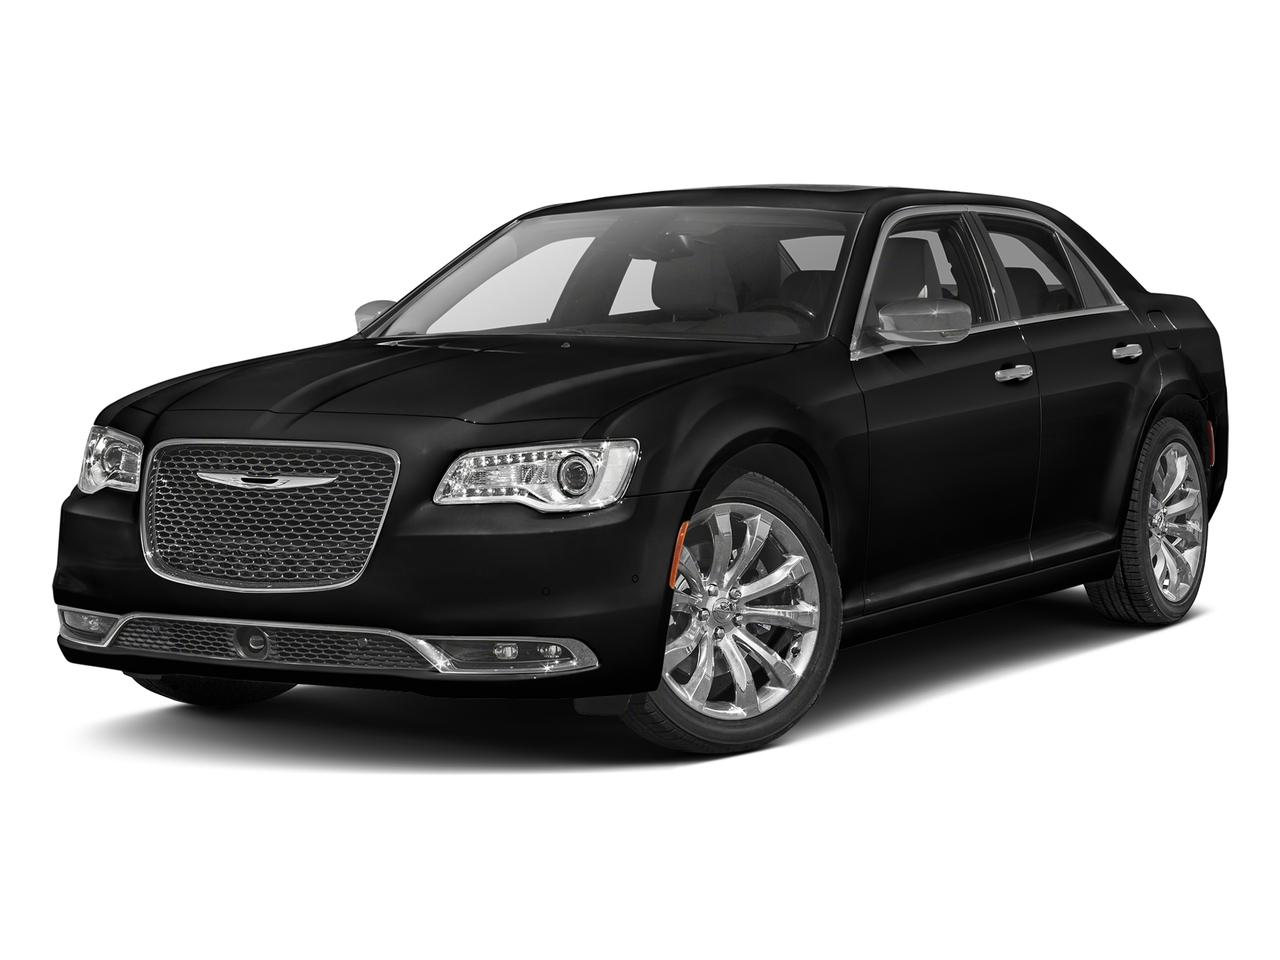 2016 Chrysler 300 Vehicle Photo in San Antonio, TX 78230